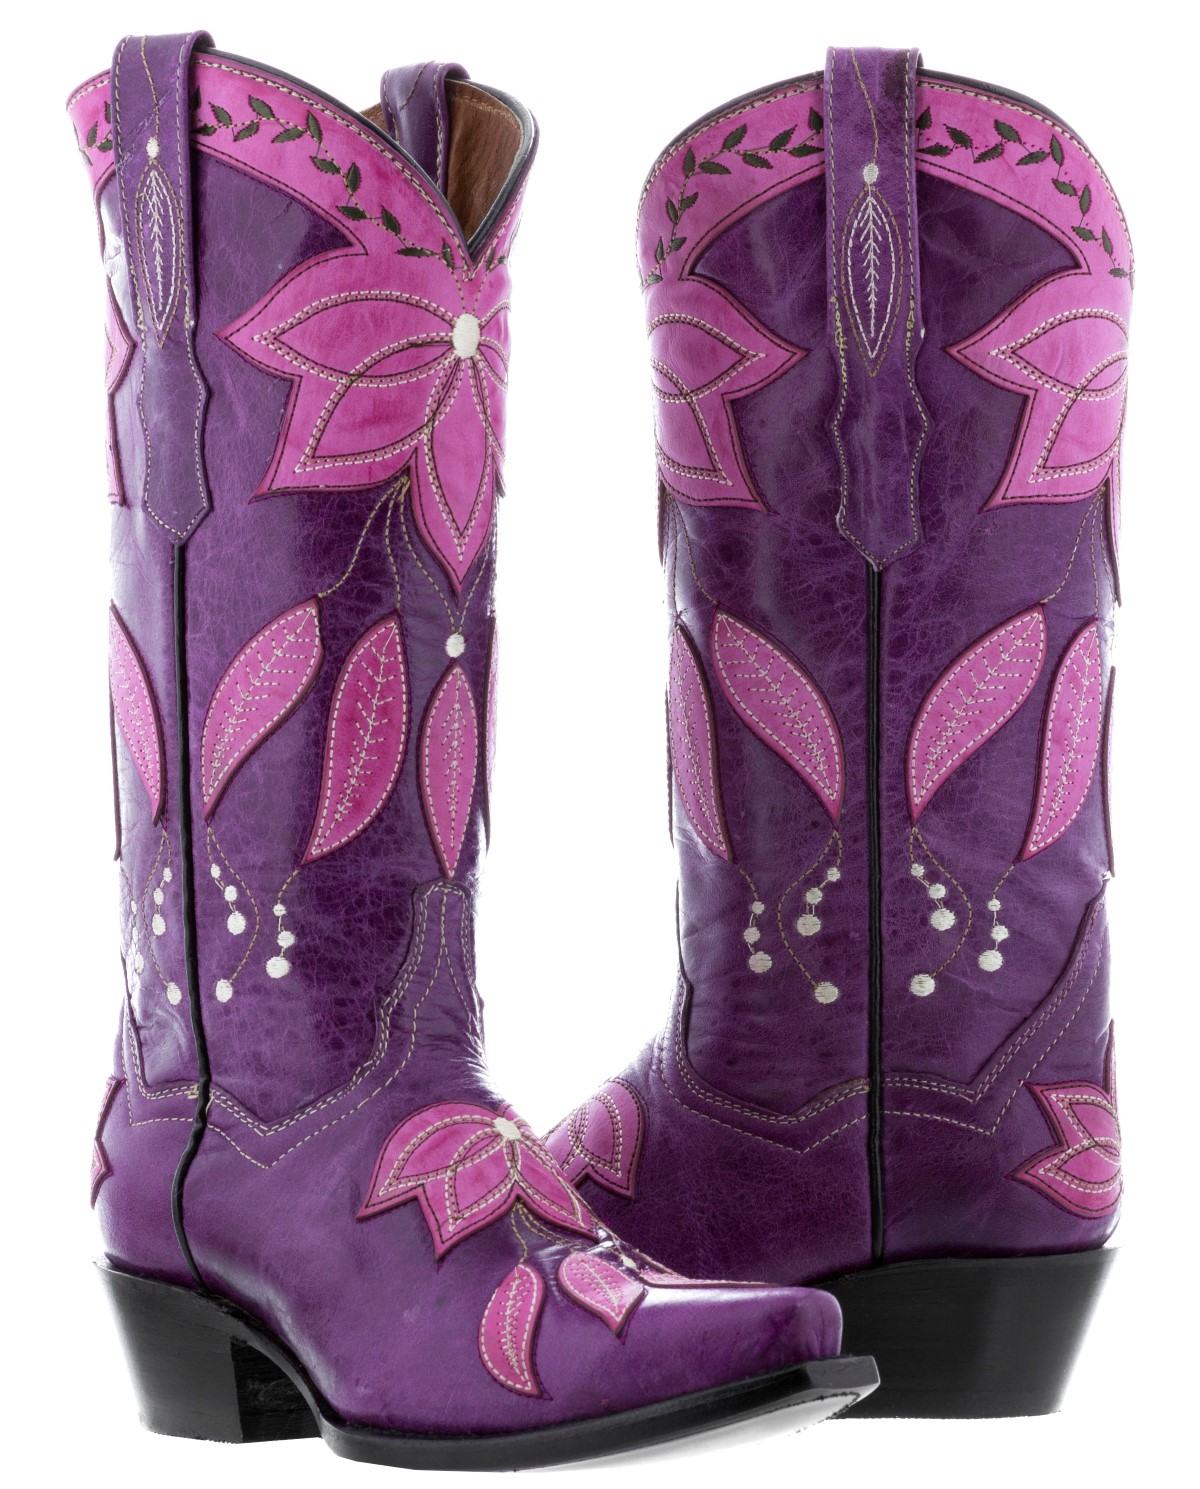 1b95f55c6b5 Womens Purple Leather Fall Cowboy Cowgirl Boots Pink Overlay Leaves ...